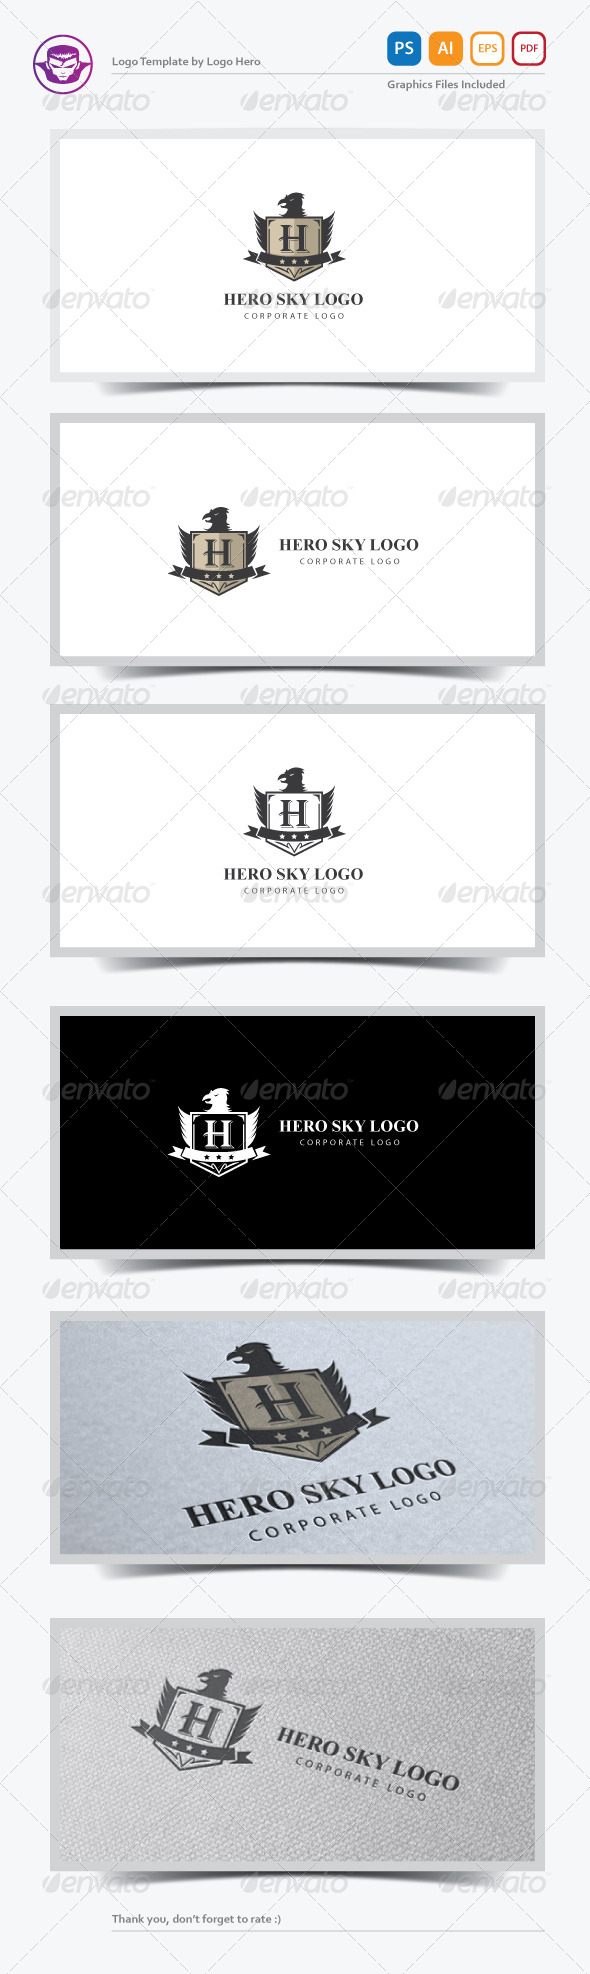 GraphicRiver Hero Sky Logo Template 7372903